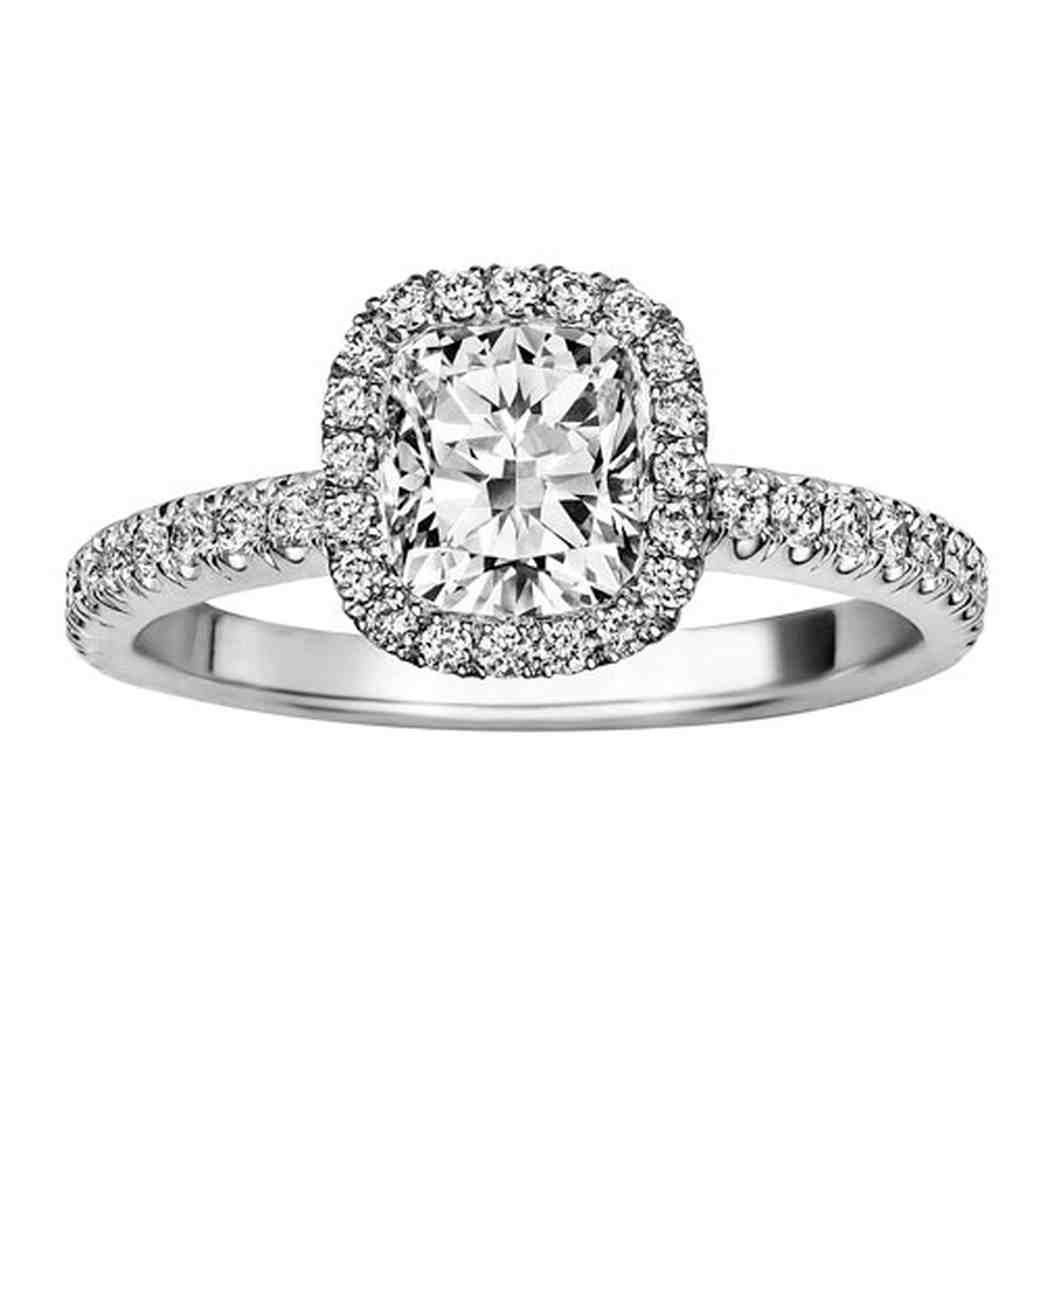 aria engagement buy how a styles an diamond brilliant earth guide ring choose to bands band